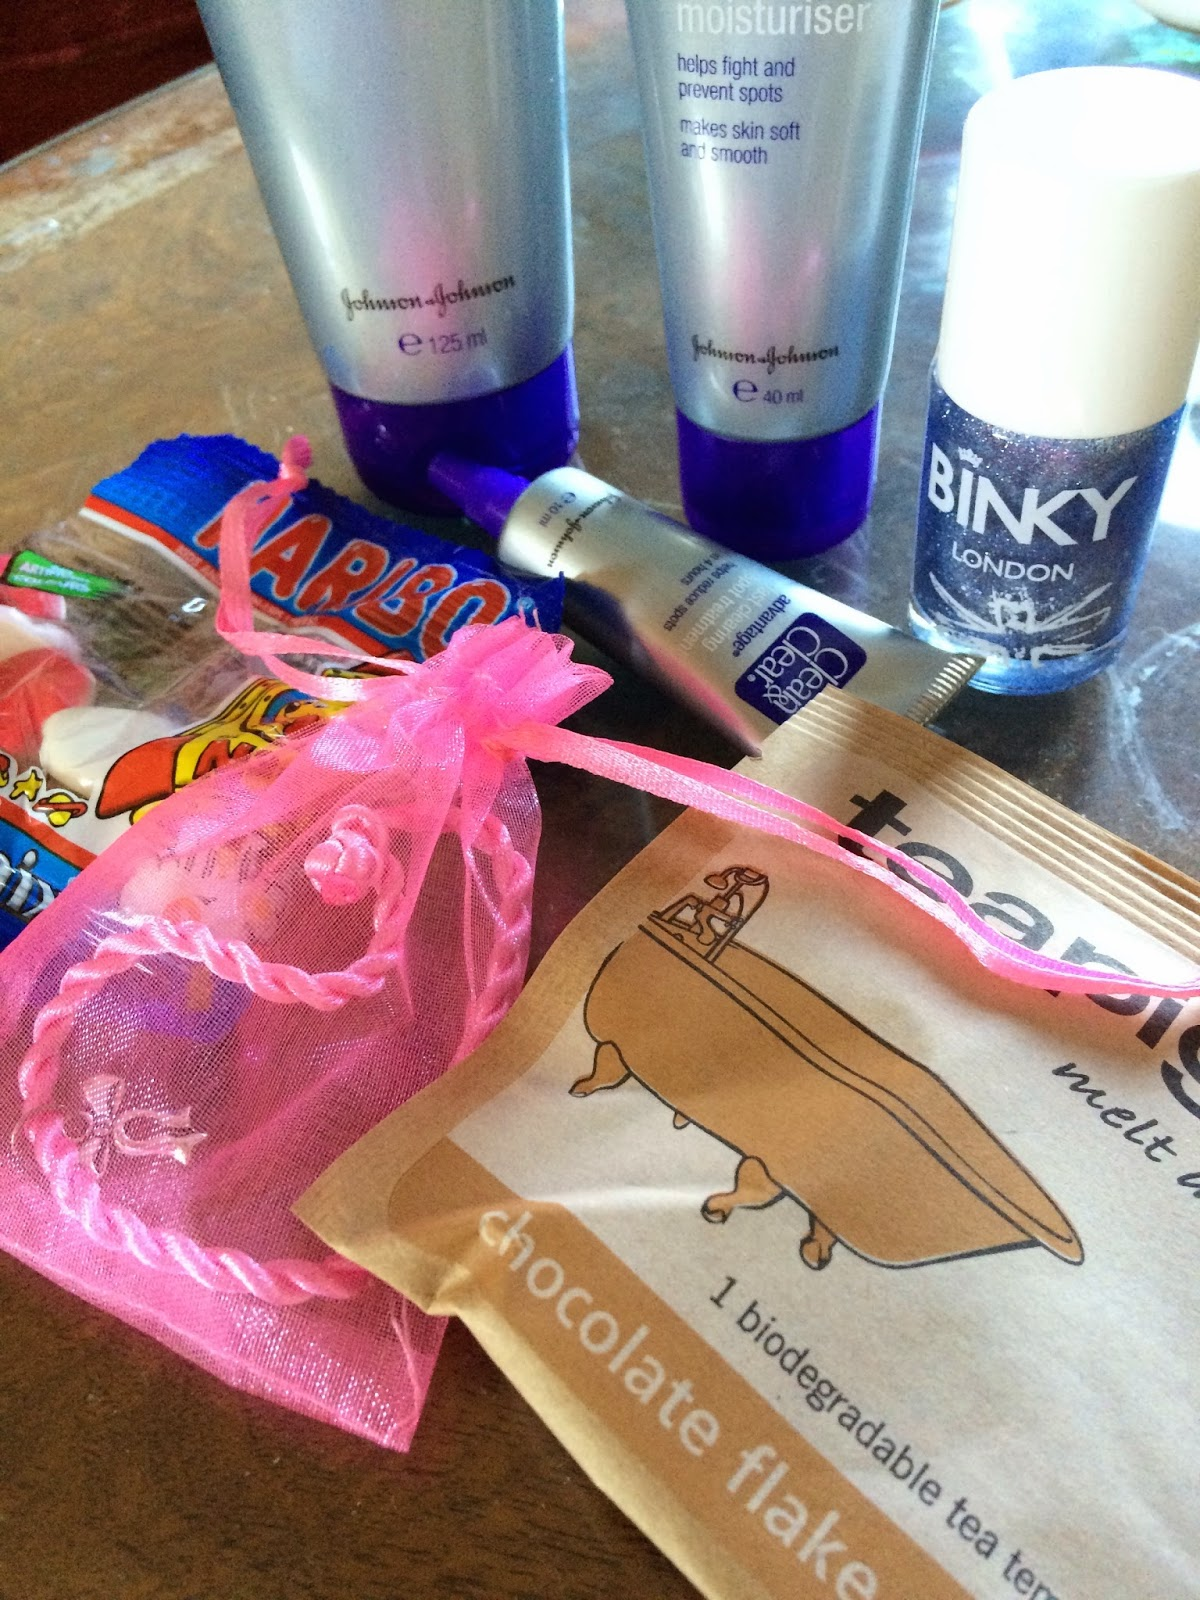 contents of Pink Parcel